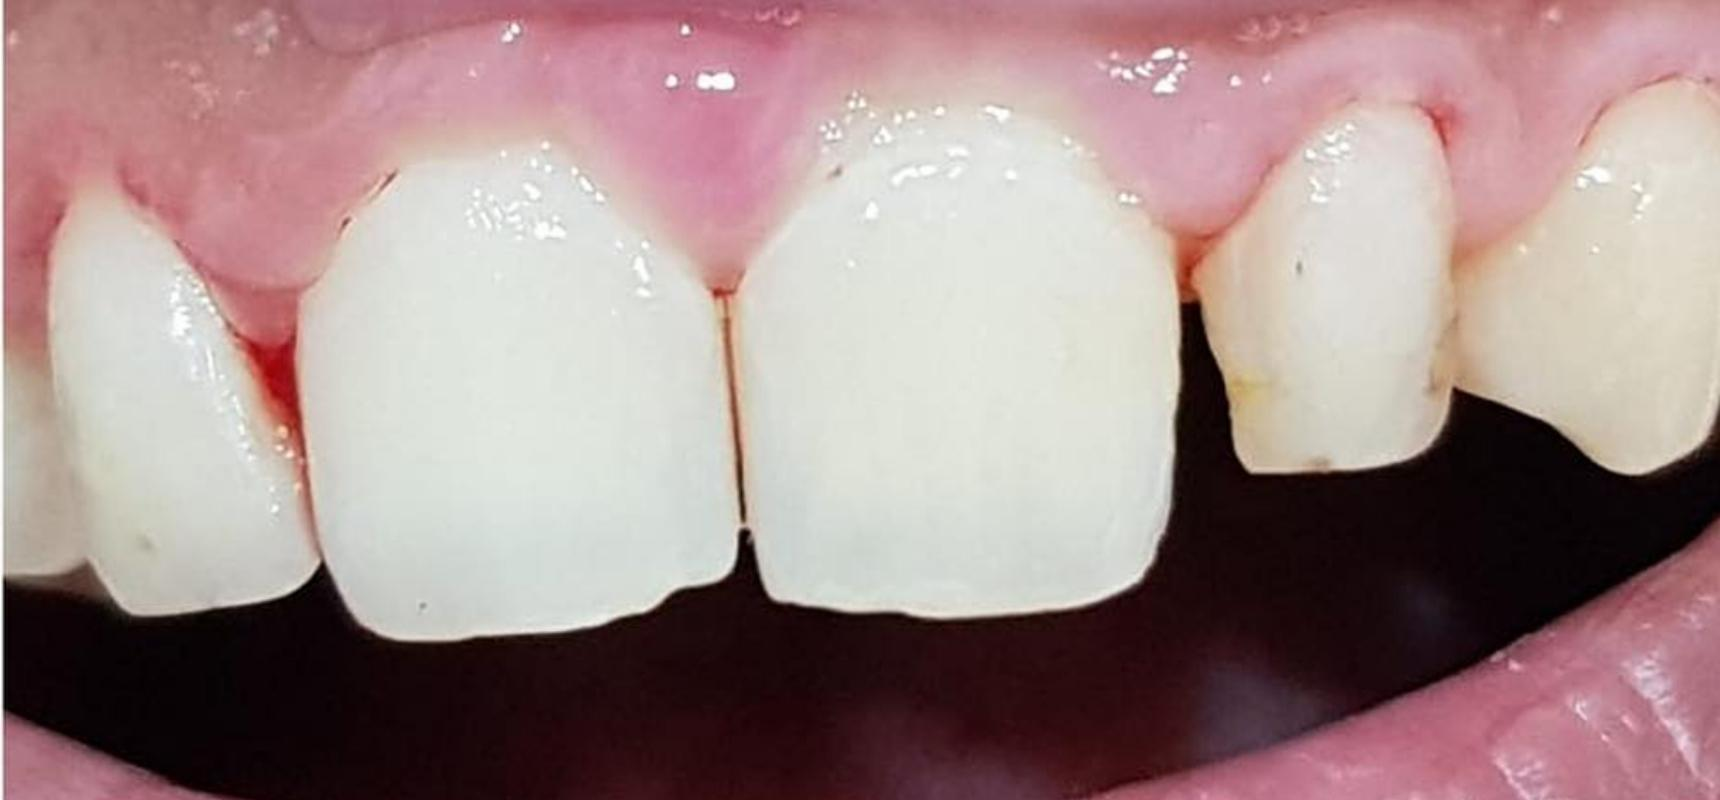 Before-Closing the space between the front teeth by using cosmetic fillings.